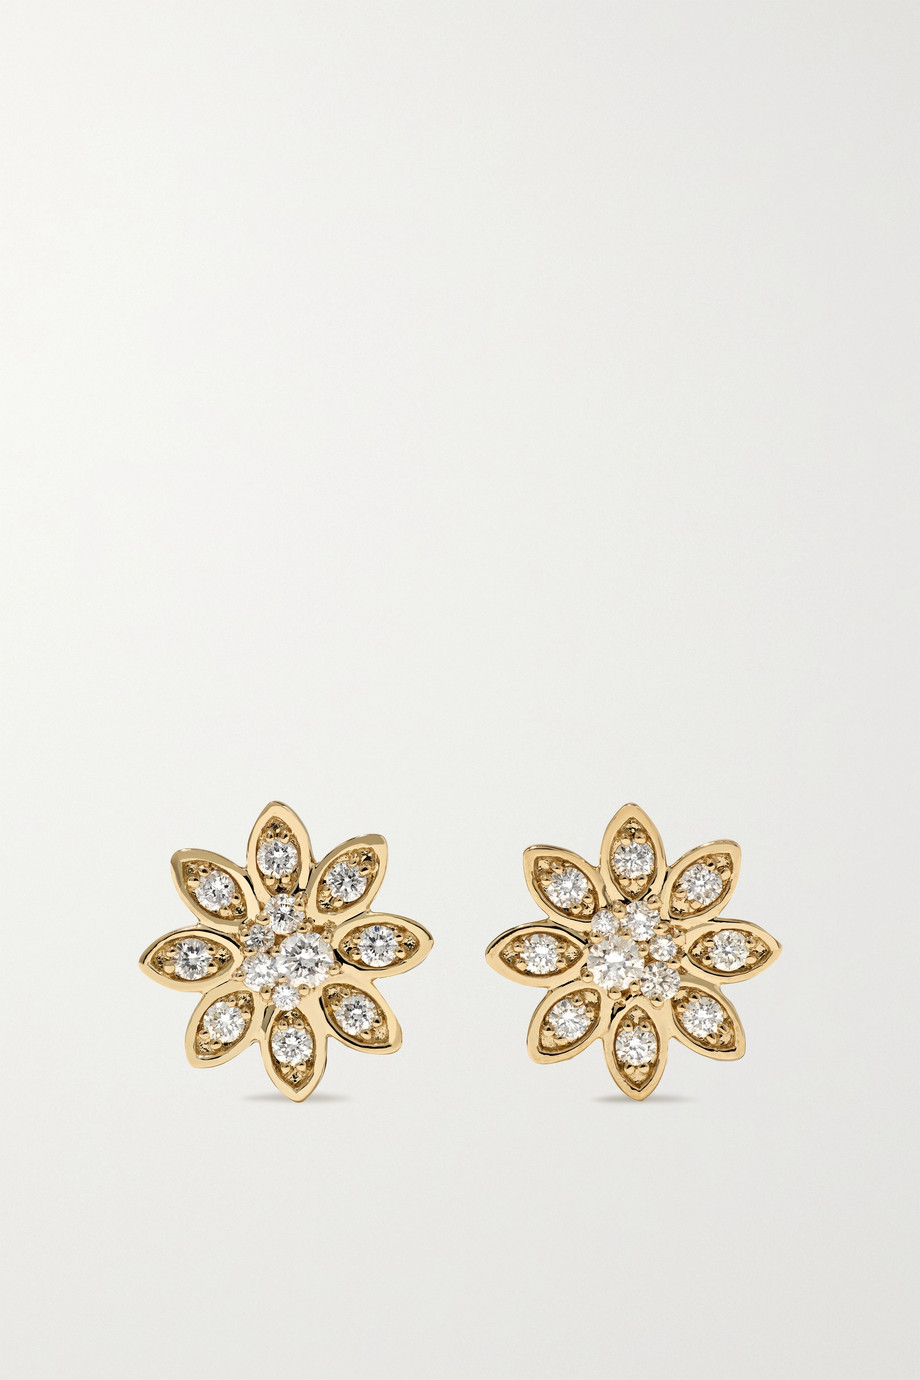 Sydney Evan Boucles d'oreilles en or 14 carats et diamants